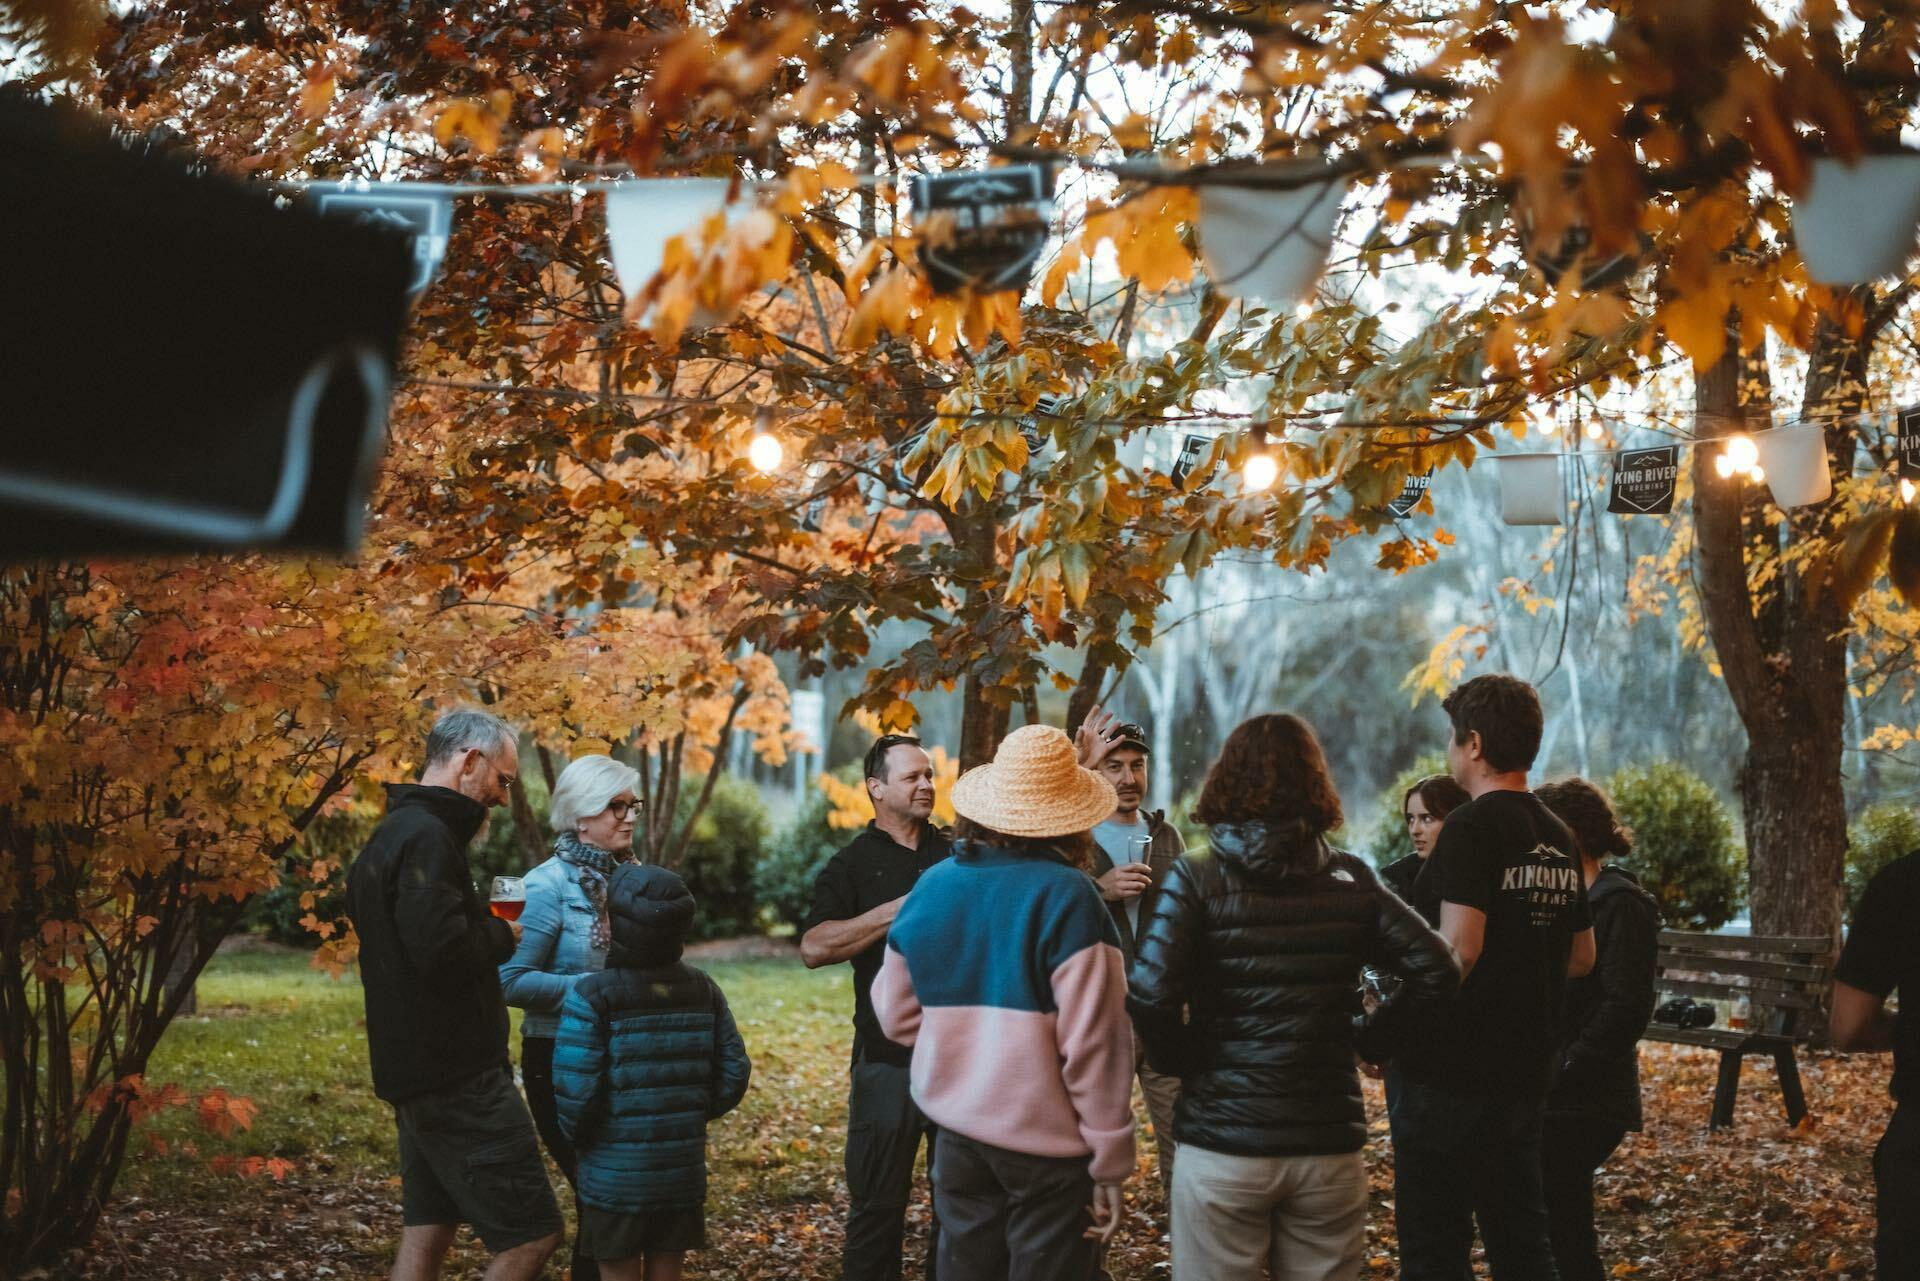 5 Hikes to Tackle Around Wangaratta (And Where to Get a Brew Afterwards), Henry Brydon, King River Brewing, autumn leaves, people, drink, friends